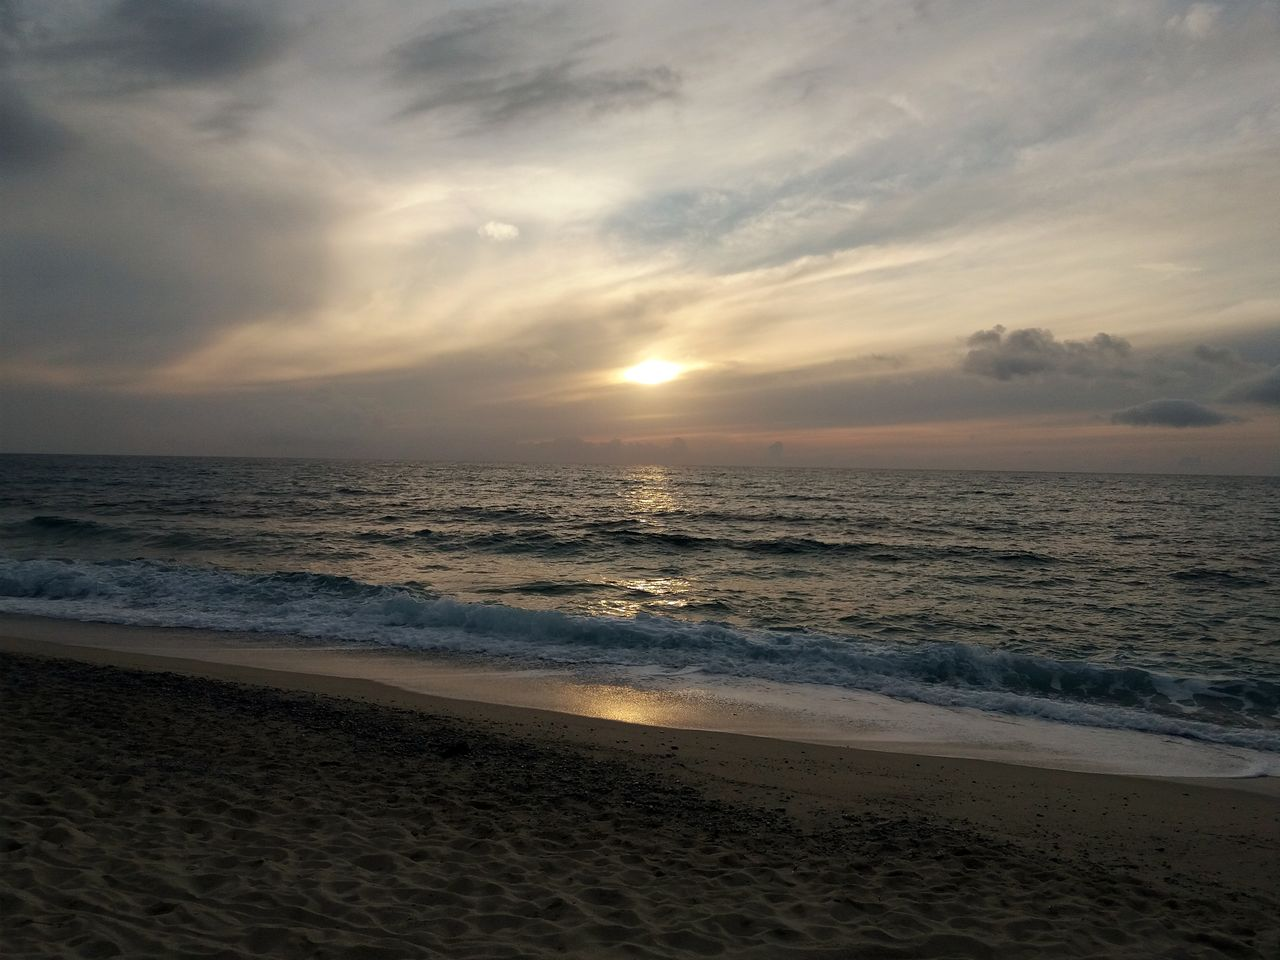 sea, beach, sky, land, water, scenics - nature, beauty in nature, sunset, horizon, horizon over water, cloud - sky, sand, tranquility, nature, tranquil scene, motion, idyllic, no people, wave, outdoors